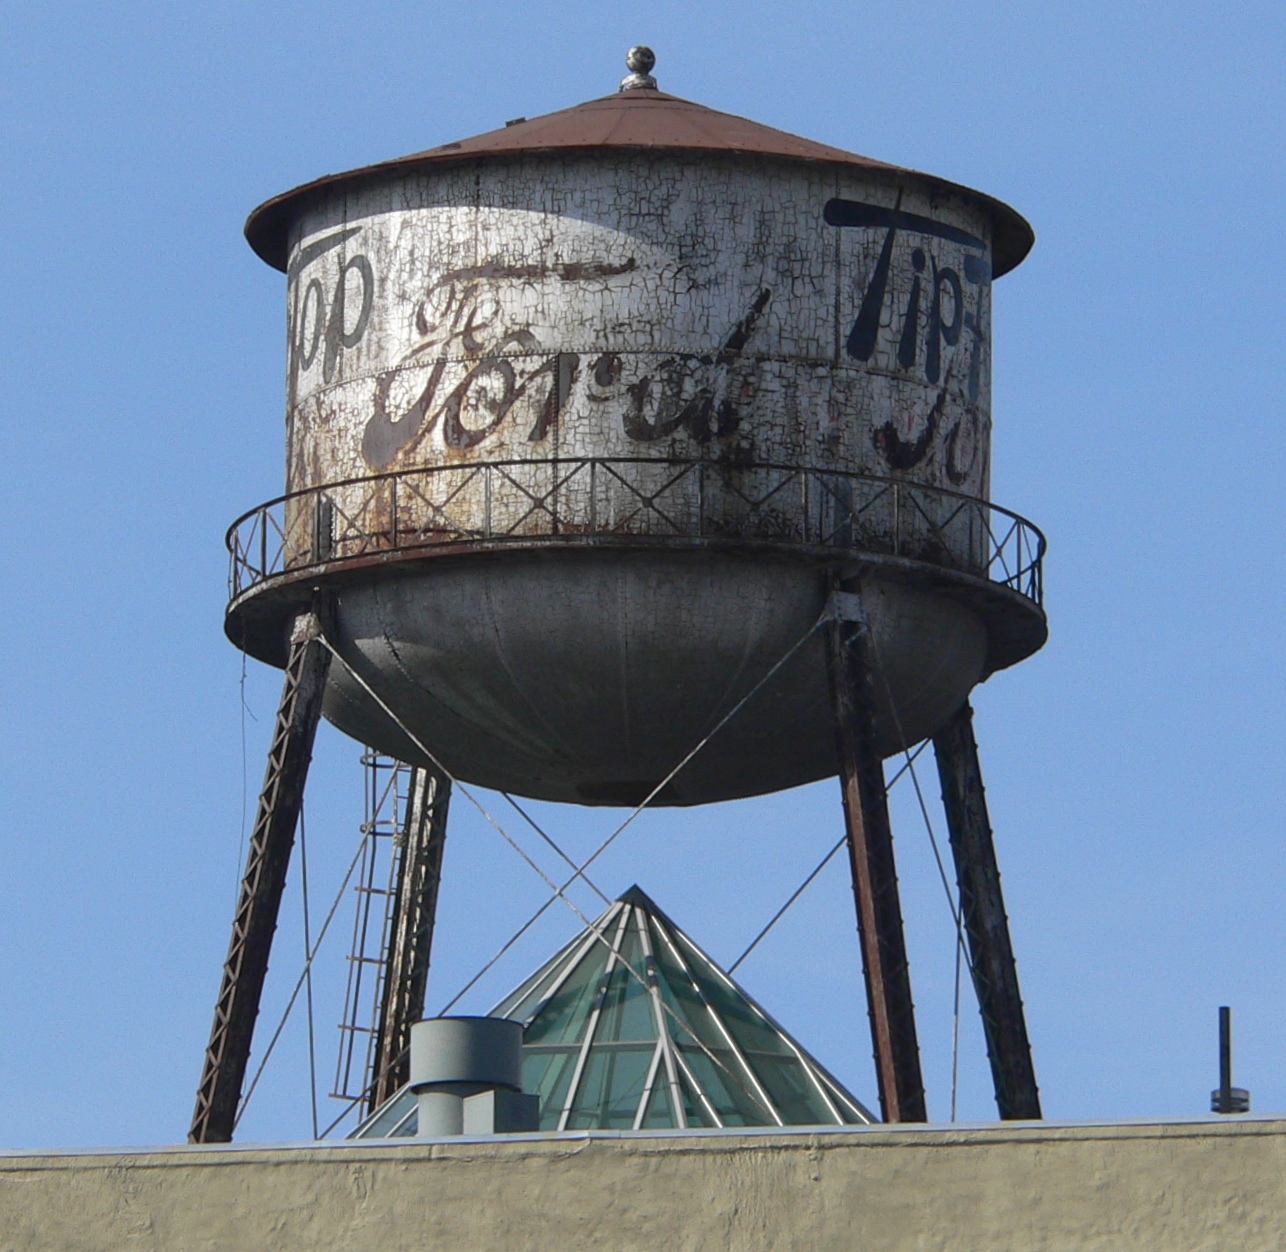 FileOmaha Ford Assembly Plant Watertower From Ejpg Wikimedia - Ford omaha